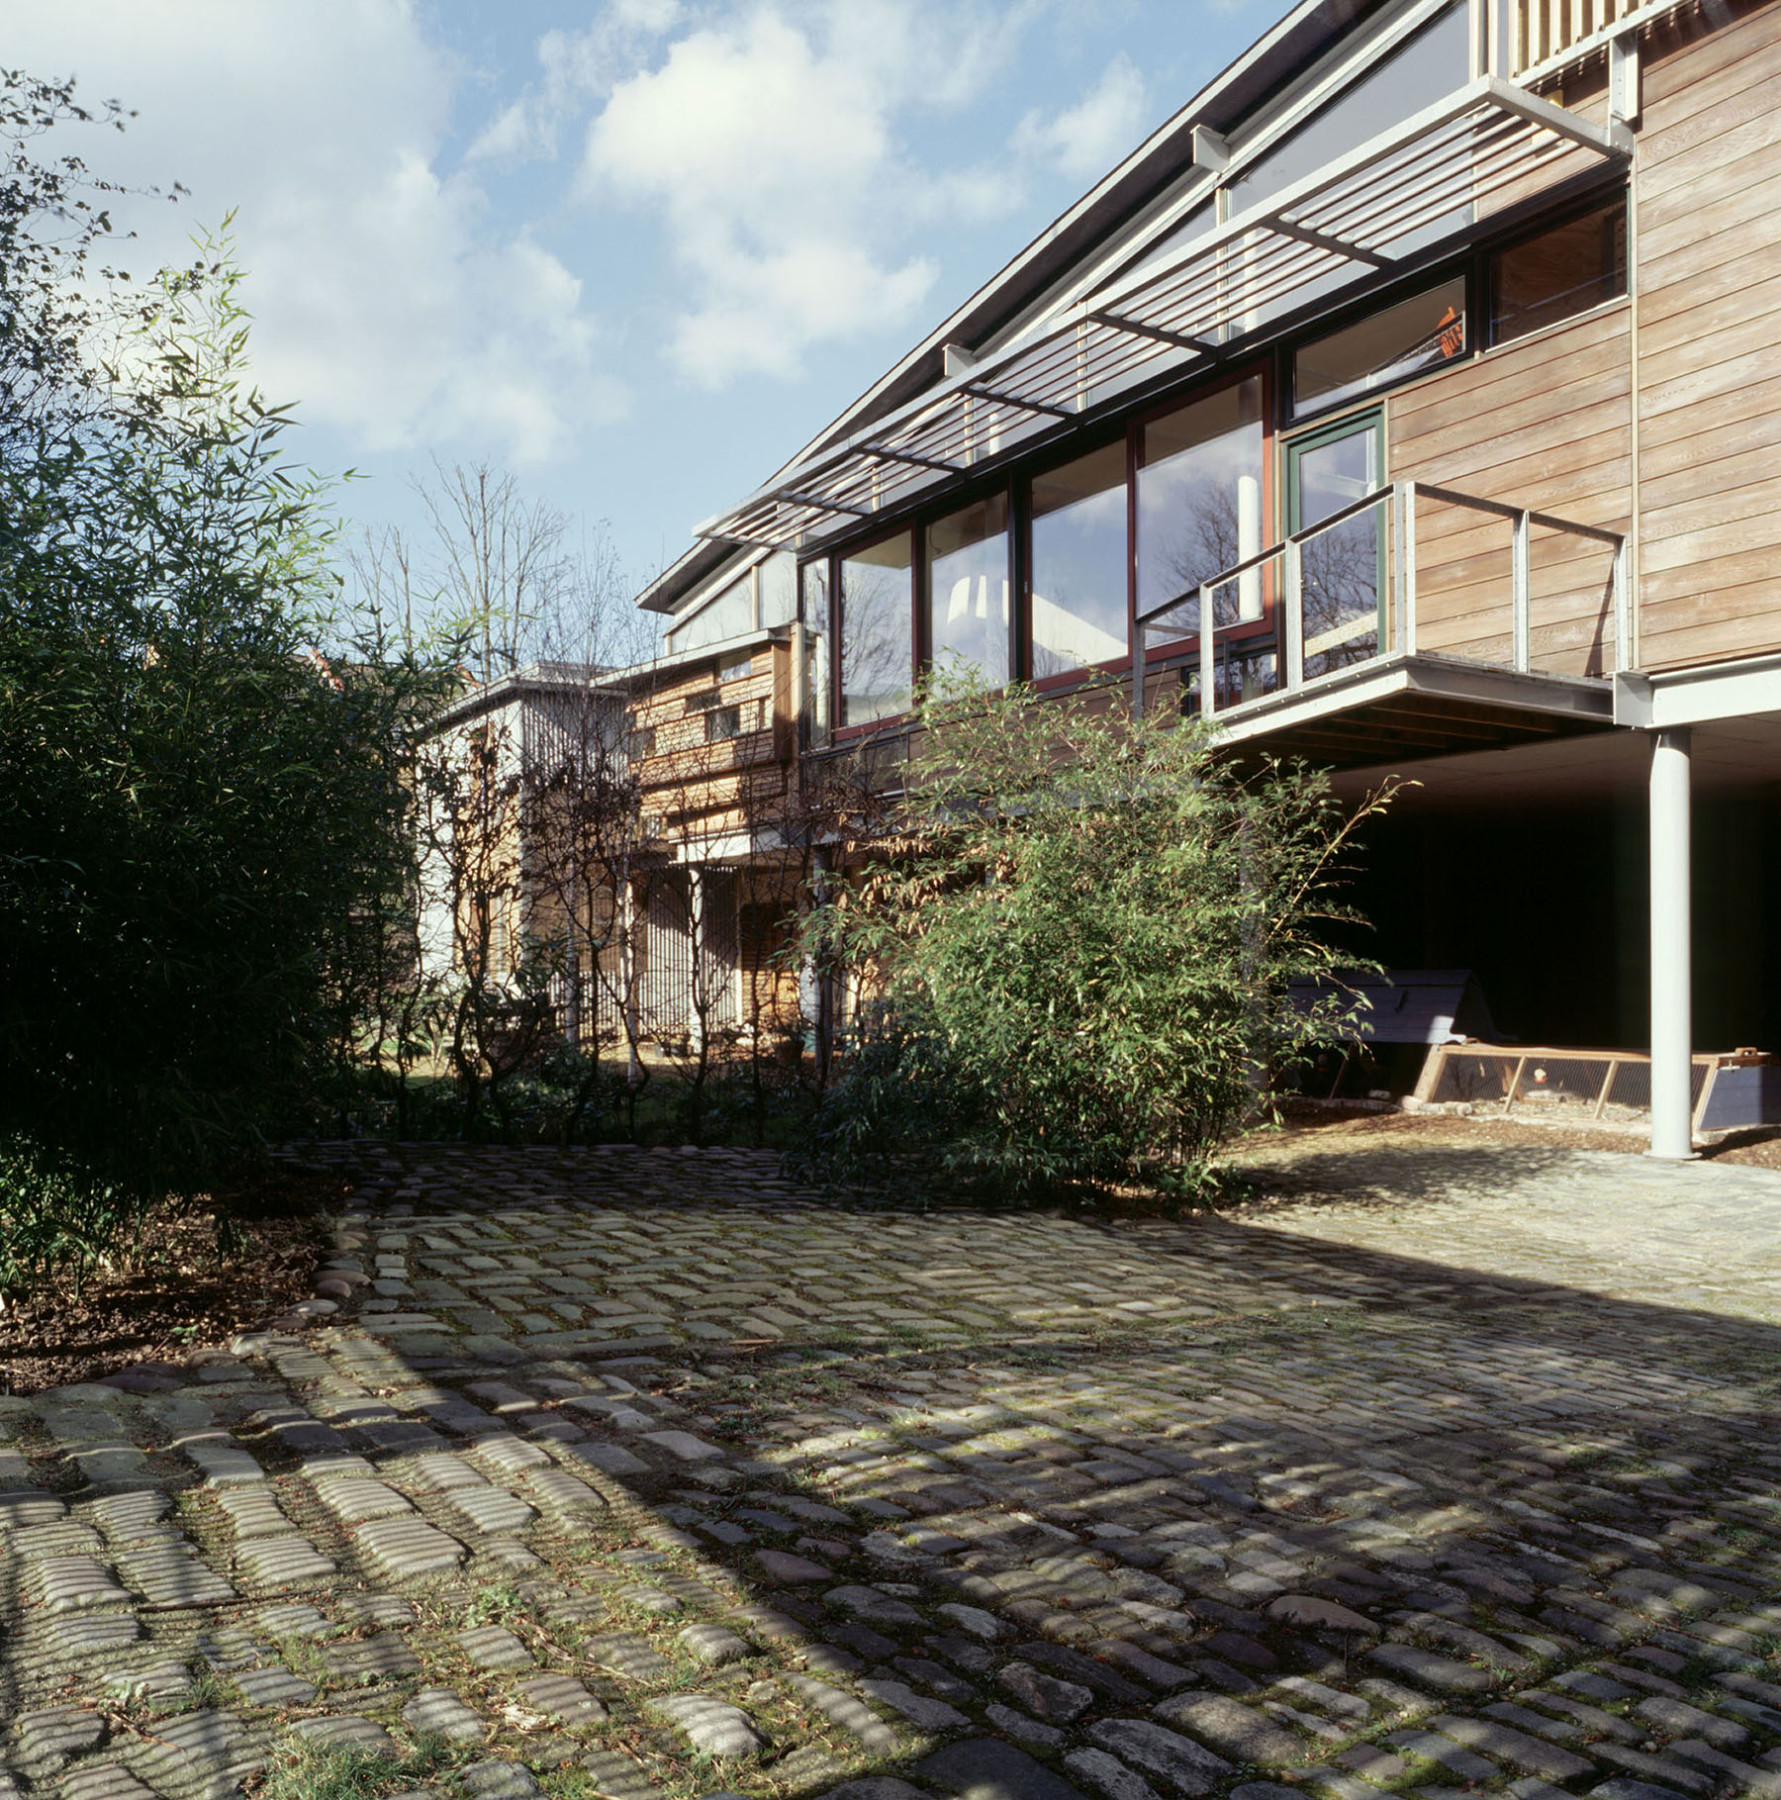 Sarah-Wigglesworth-Architects Stock Orchard Street court view 1800